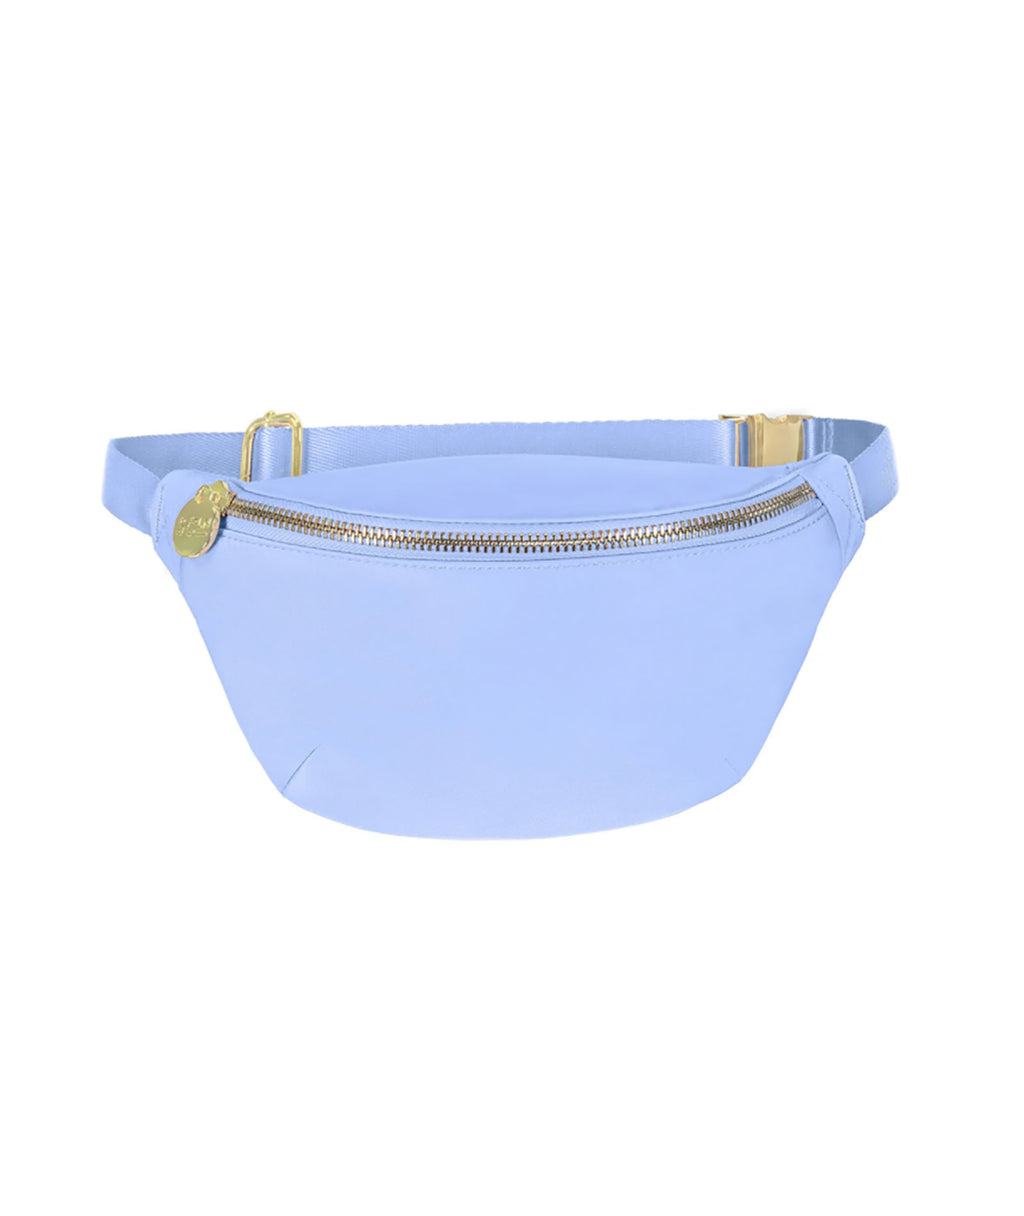 Stoney Clover Classic Periwinkle Nylon Fanny Pack